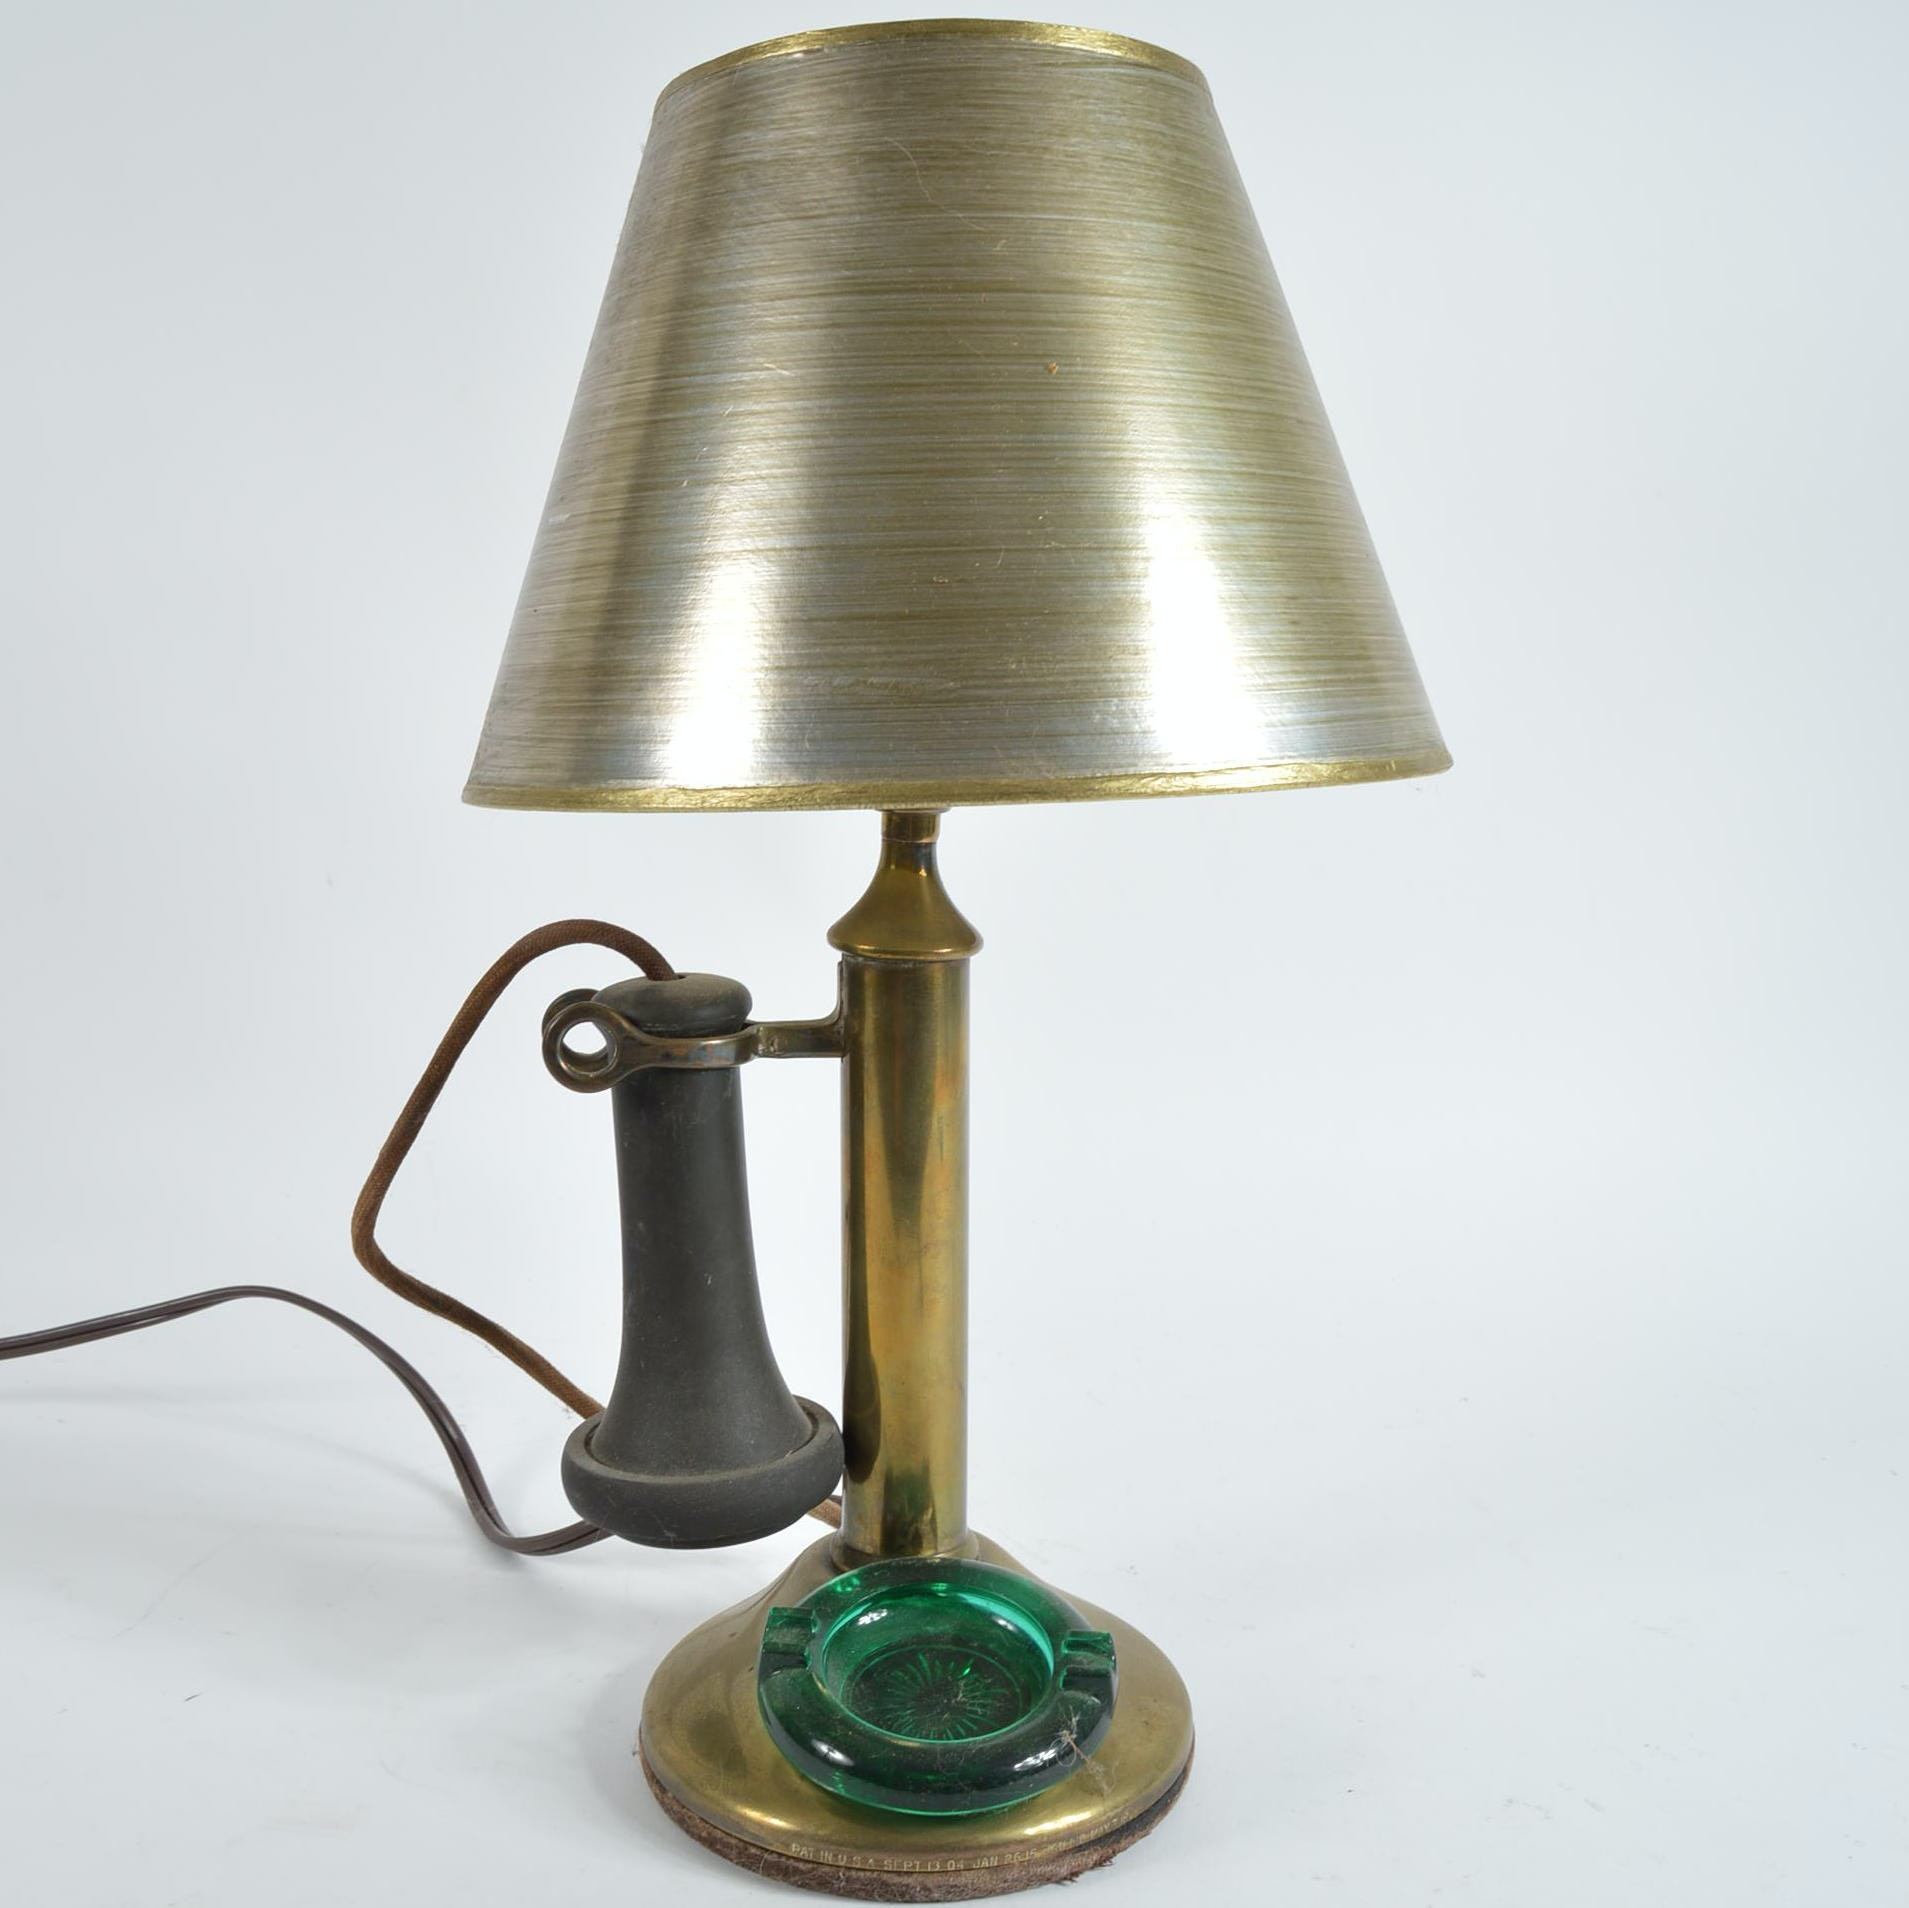 Converted Candlestick Telephone Lamp